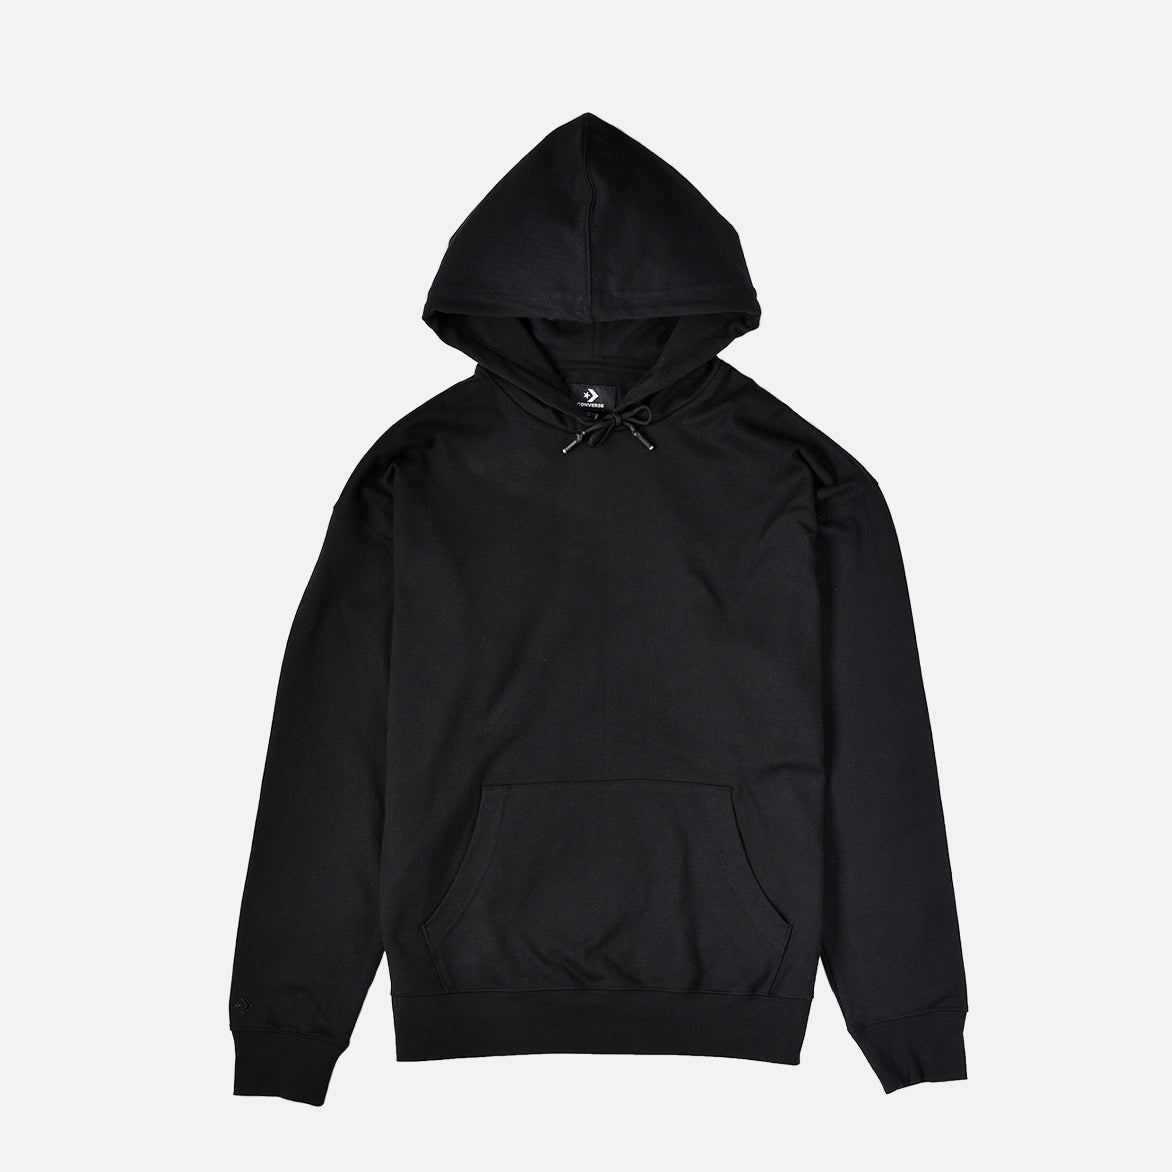 SHANIQWA JARVIS x CONVERSE HOODIE - TEABERRY / BLACK